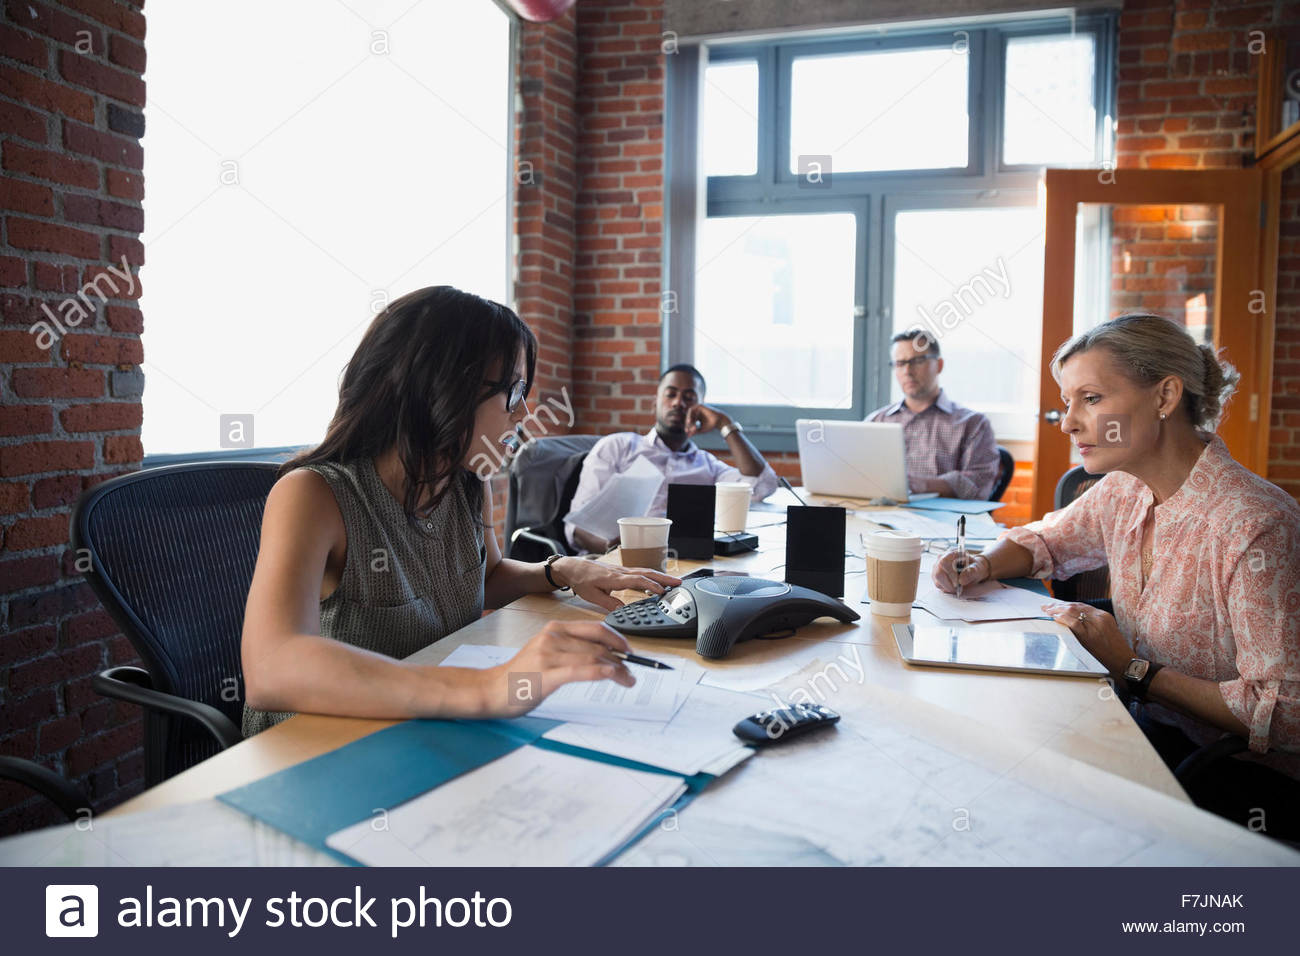 Business people in conference call meeting - Stock Image